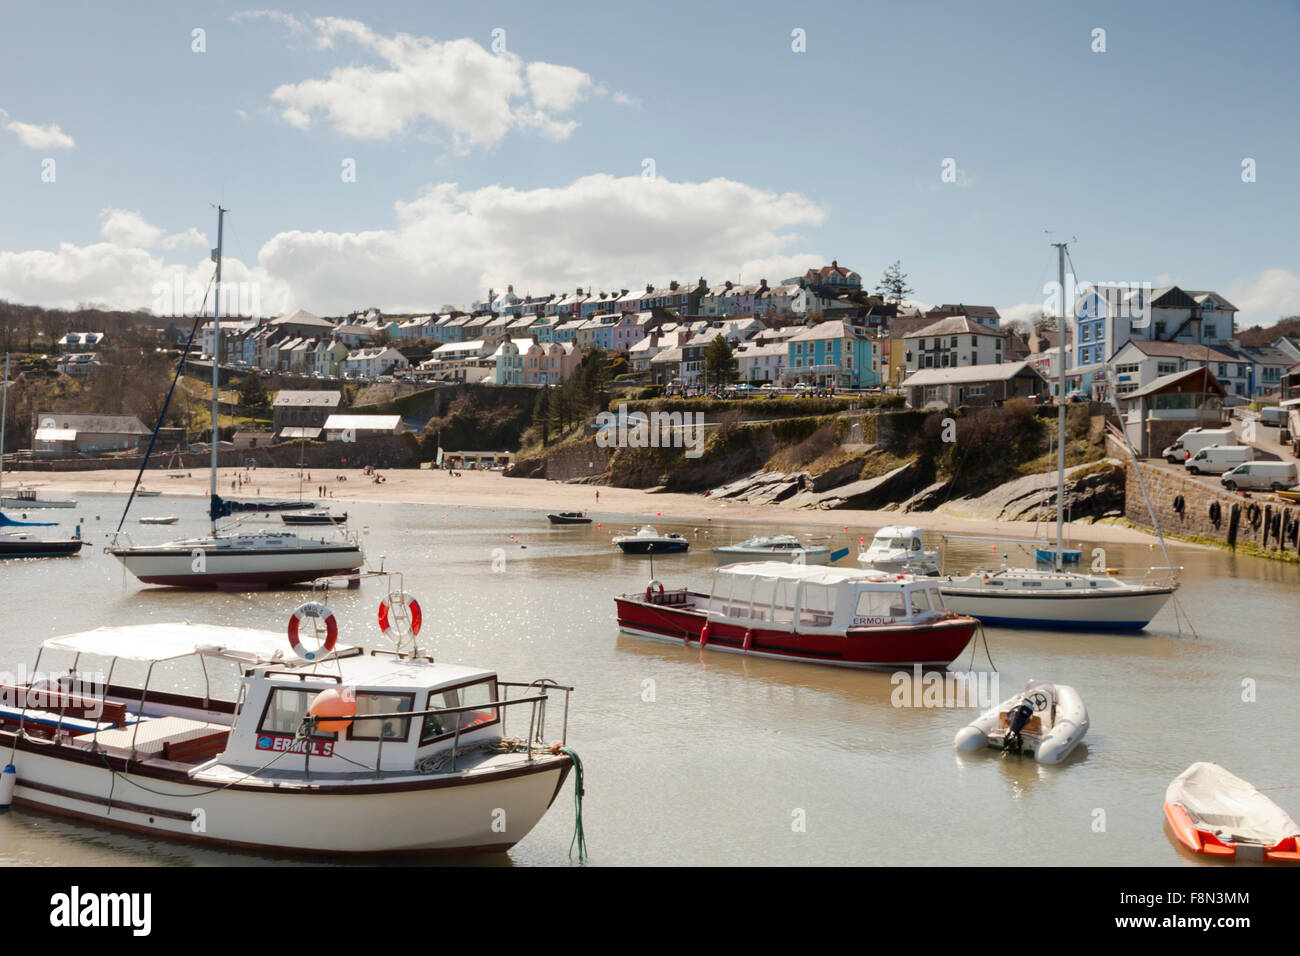 Picturesque New Quay / Cei Newydd harbour, Ceredigion, West Wales - Stock Image